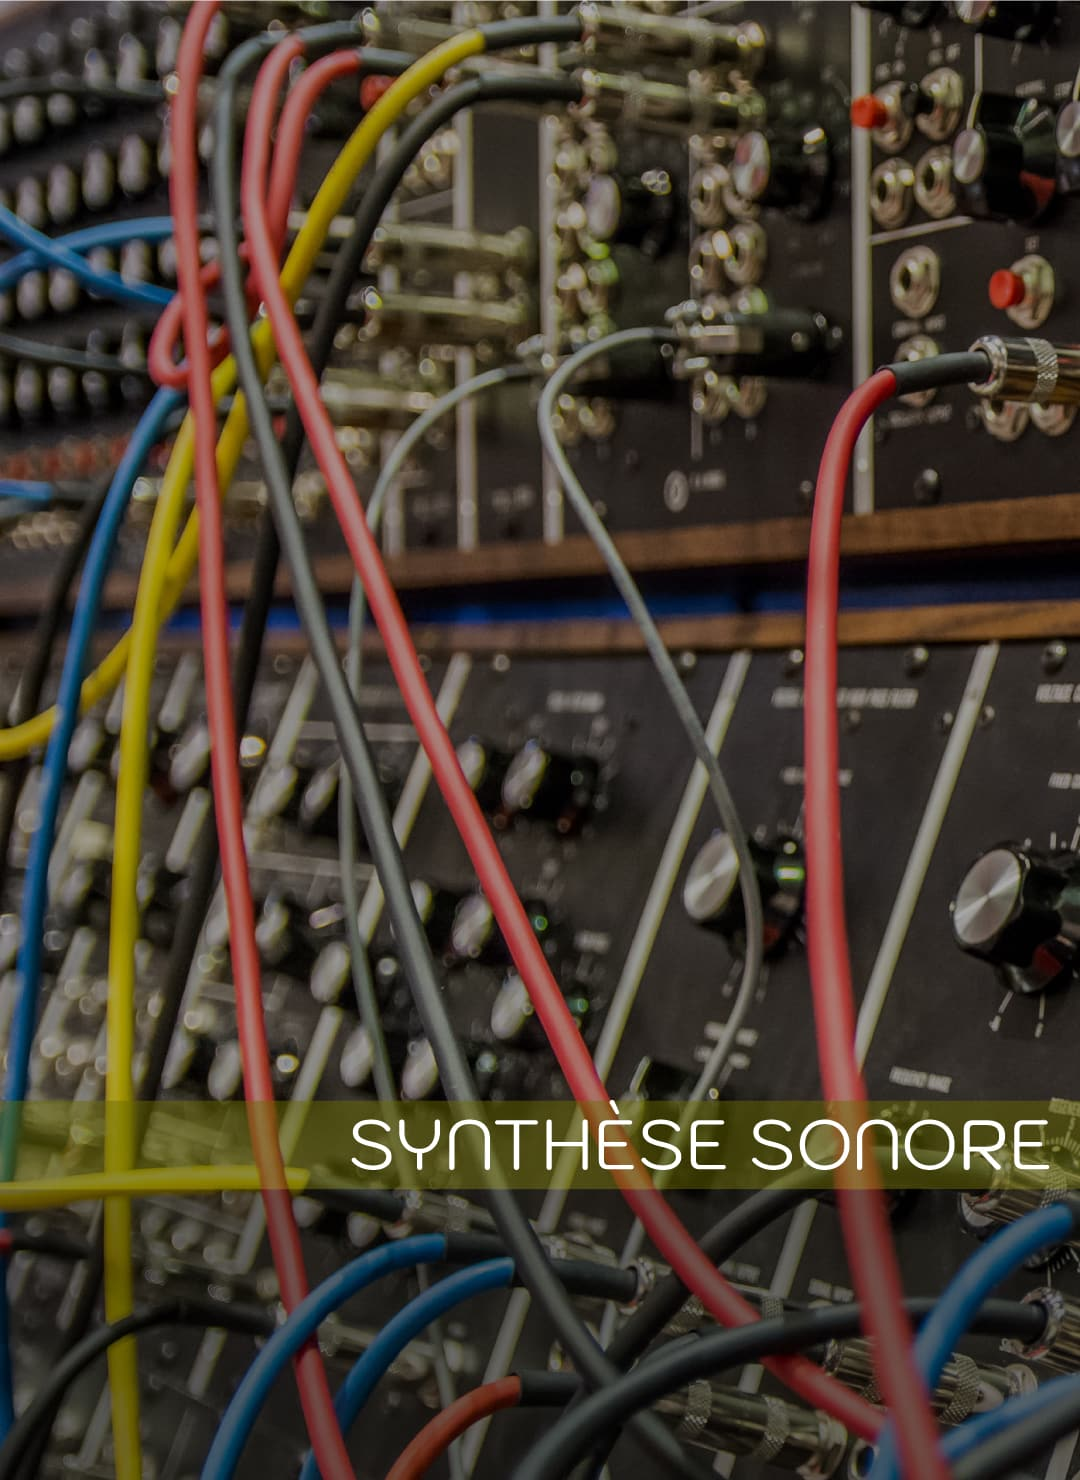 Cours de synthèse sonore